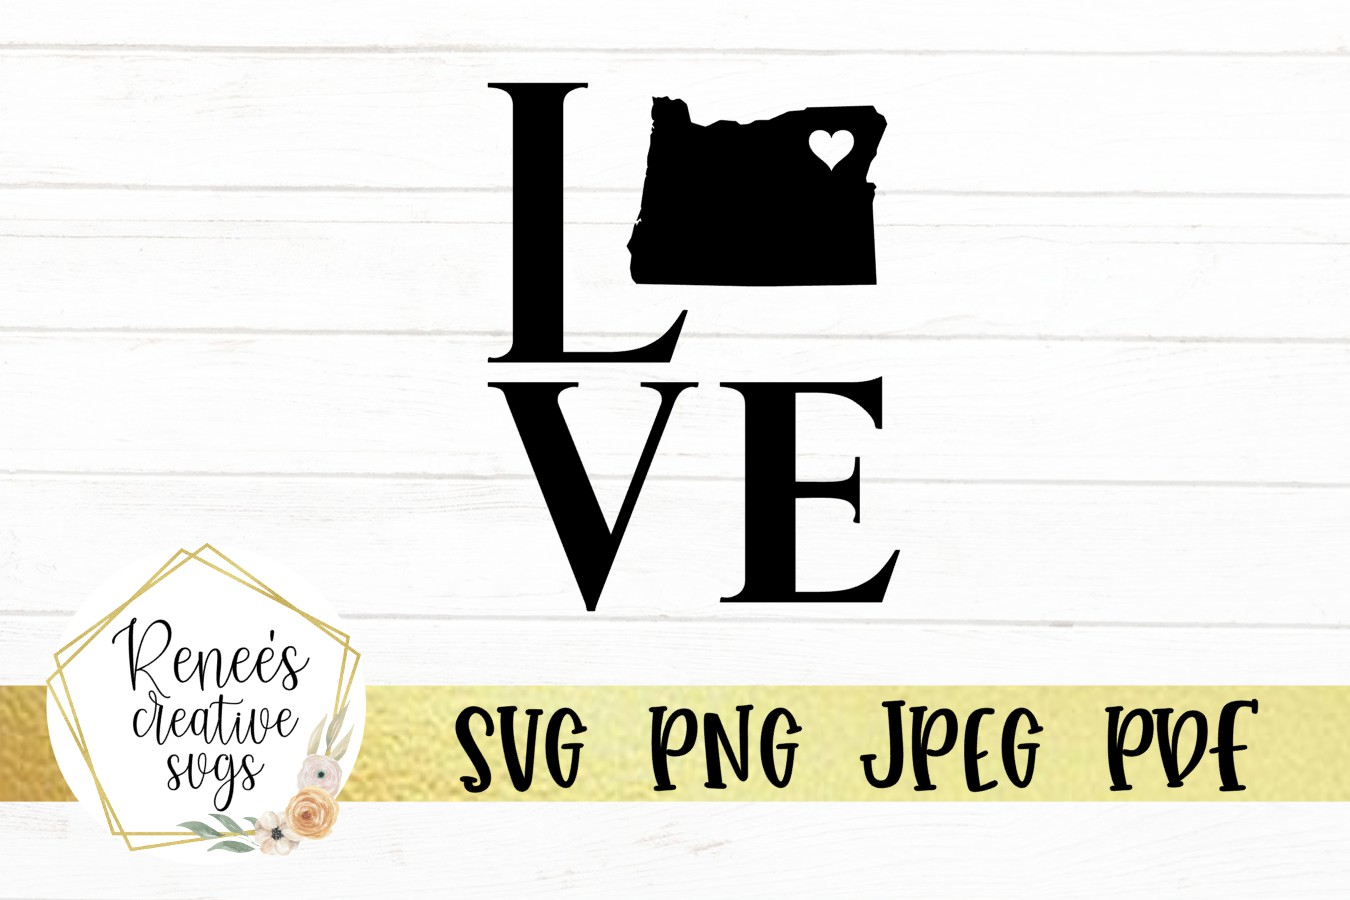 Oregon love with heart | State SVG | SVG Cutting file example image 2